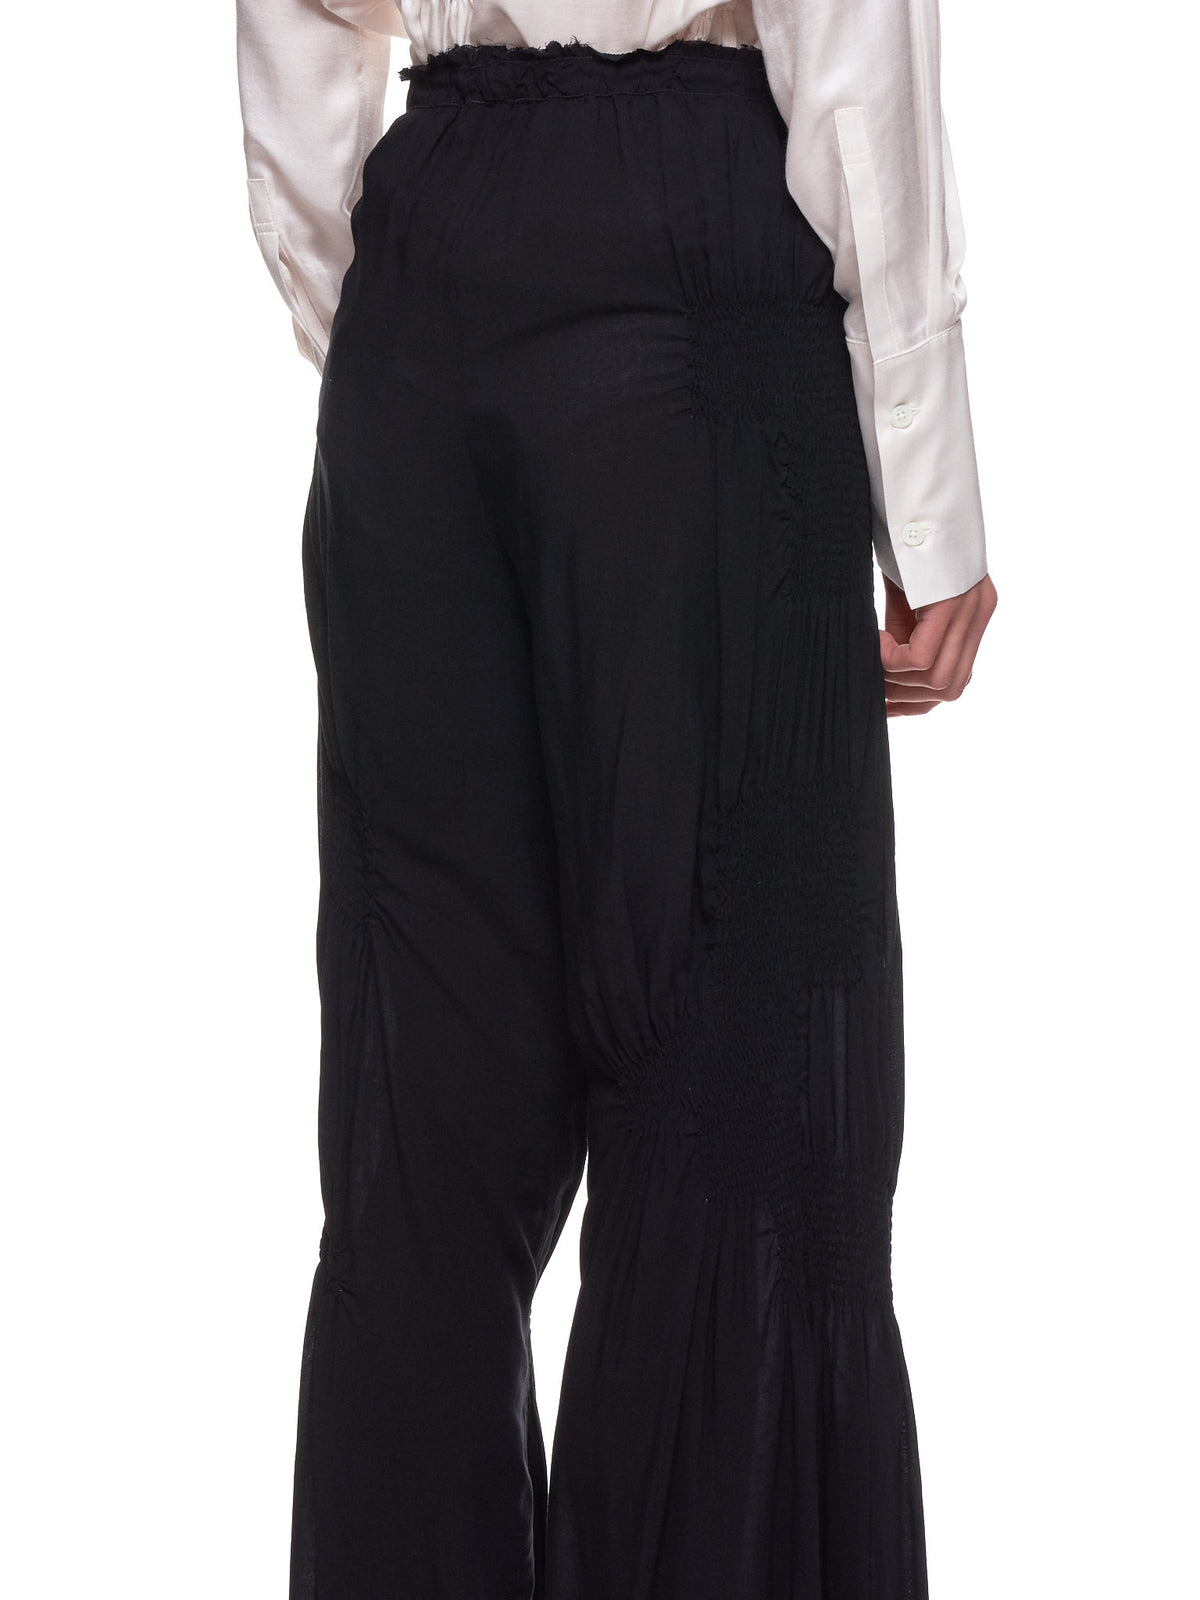 'Ewing Trousers' (1901-1438-124-099-BLACK)